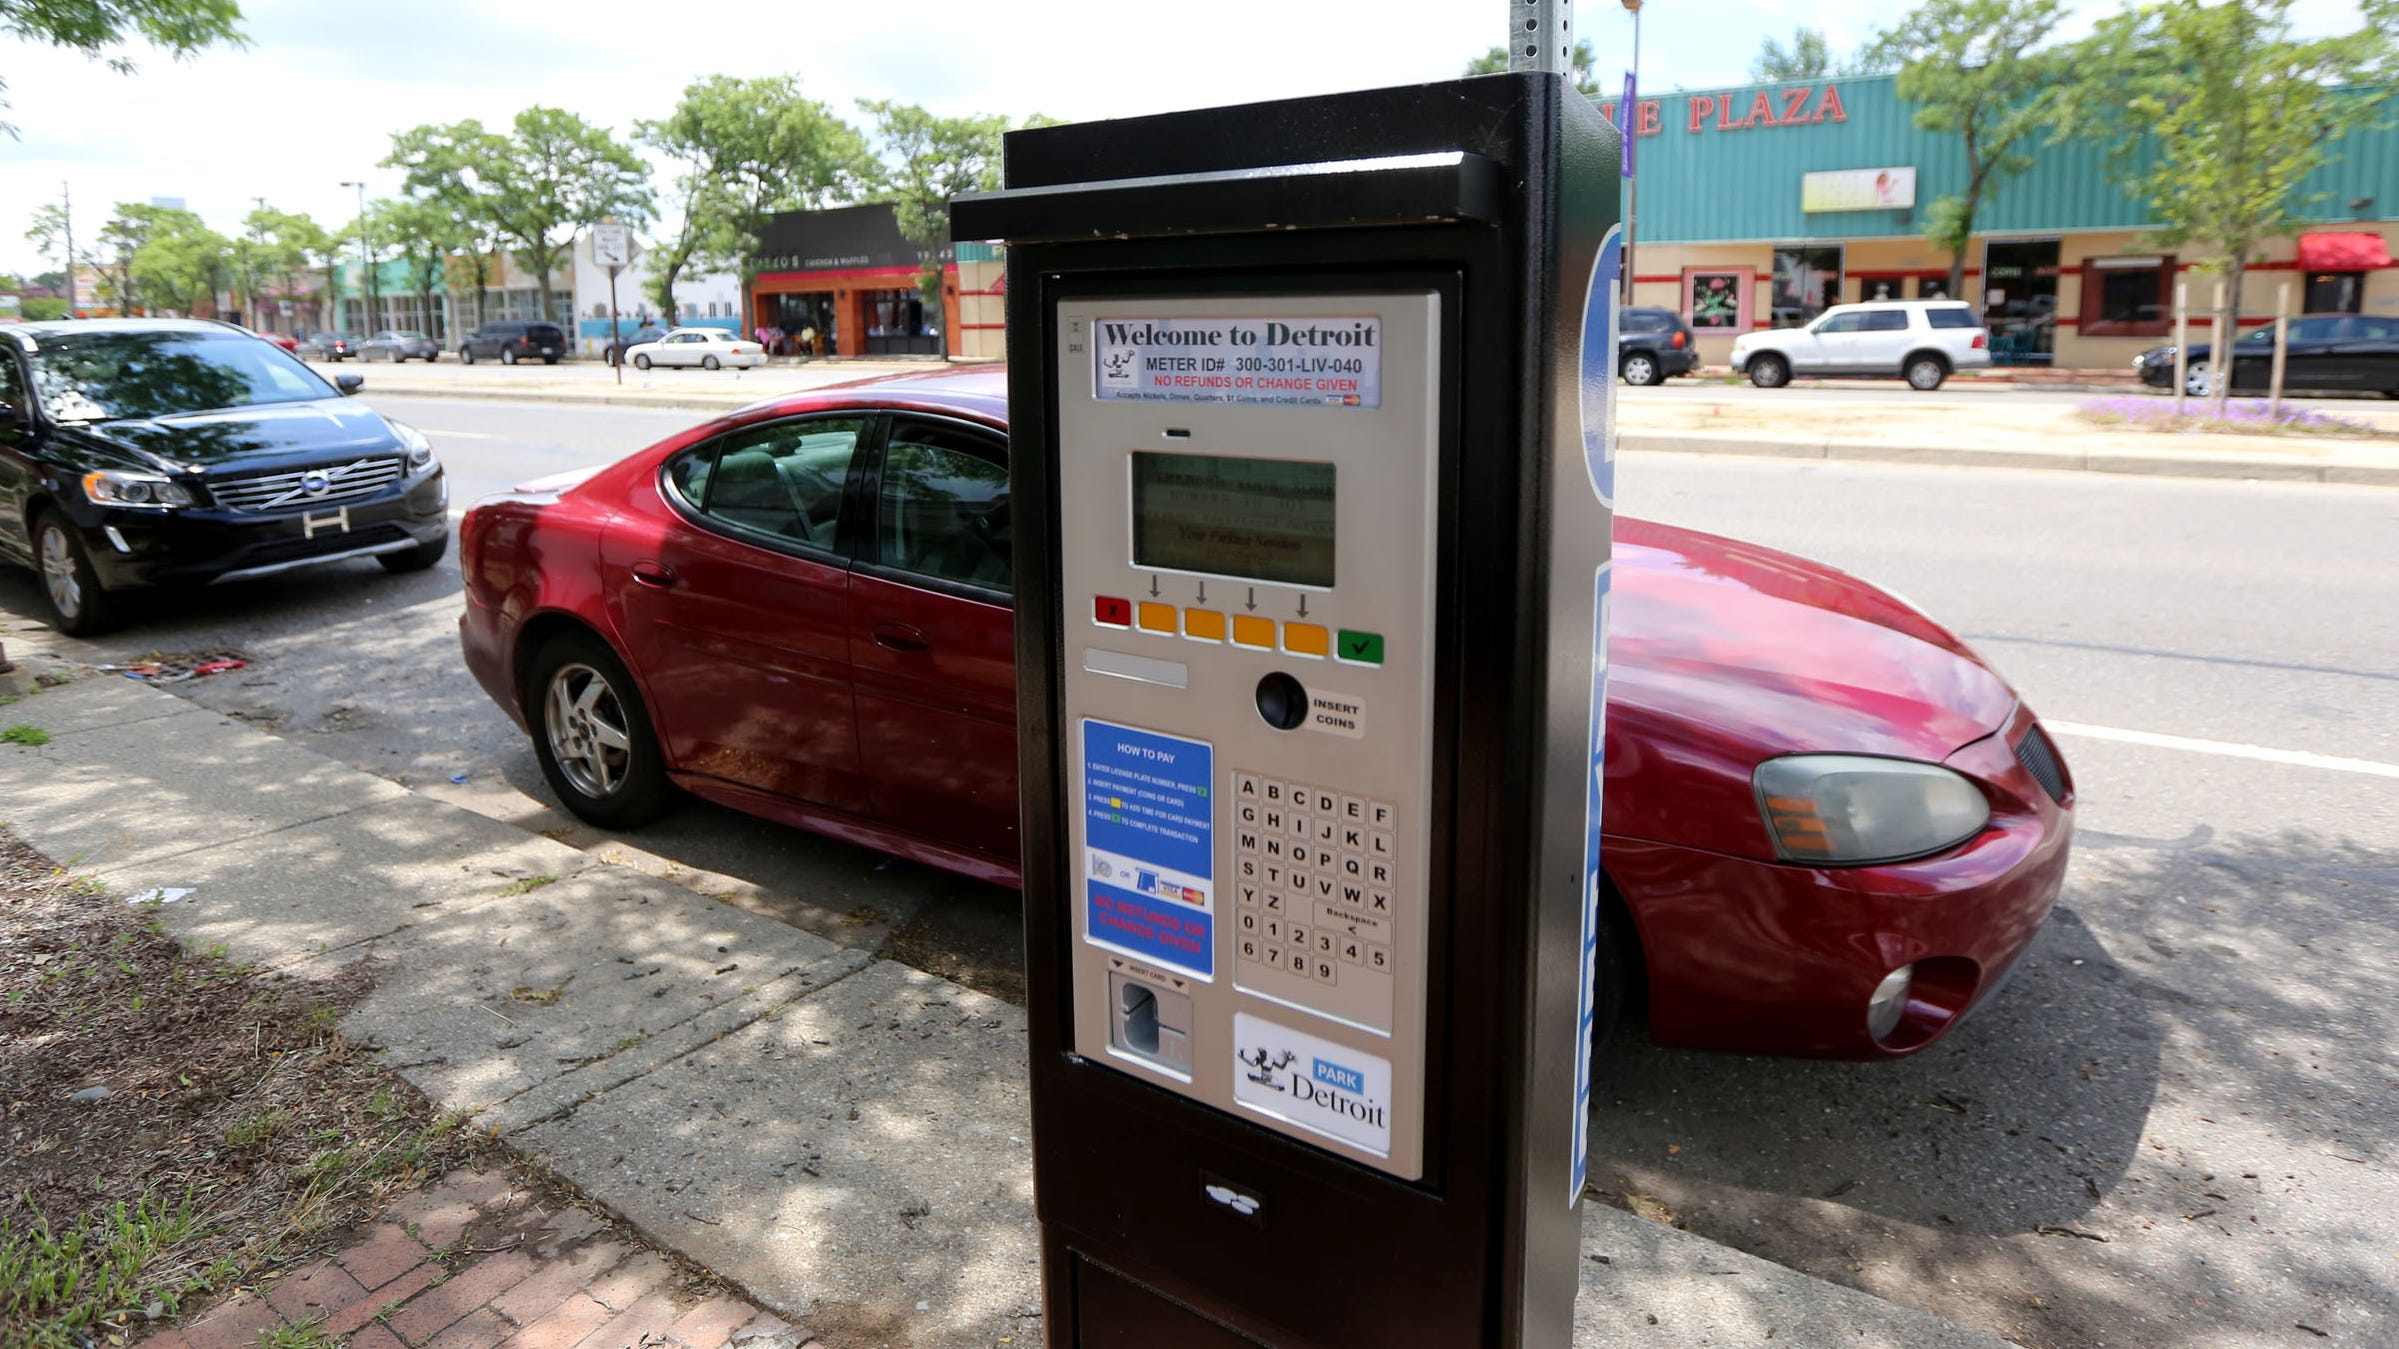 See how much Detroit parking ticket rates may drop under new proposal